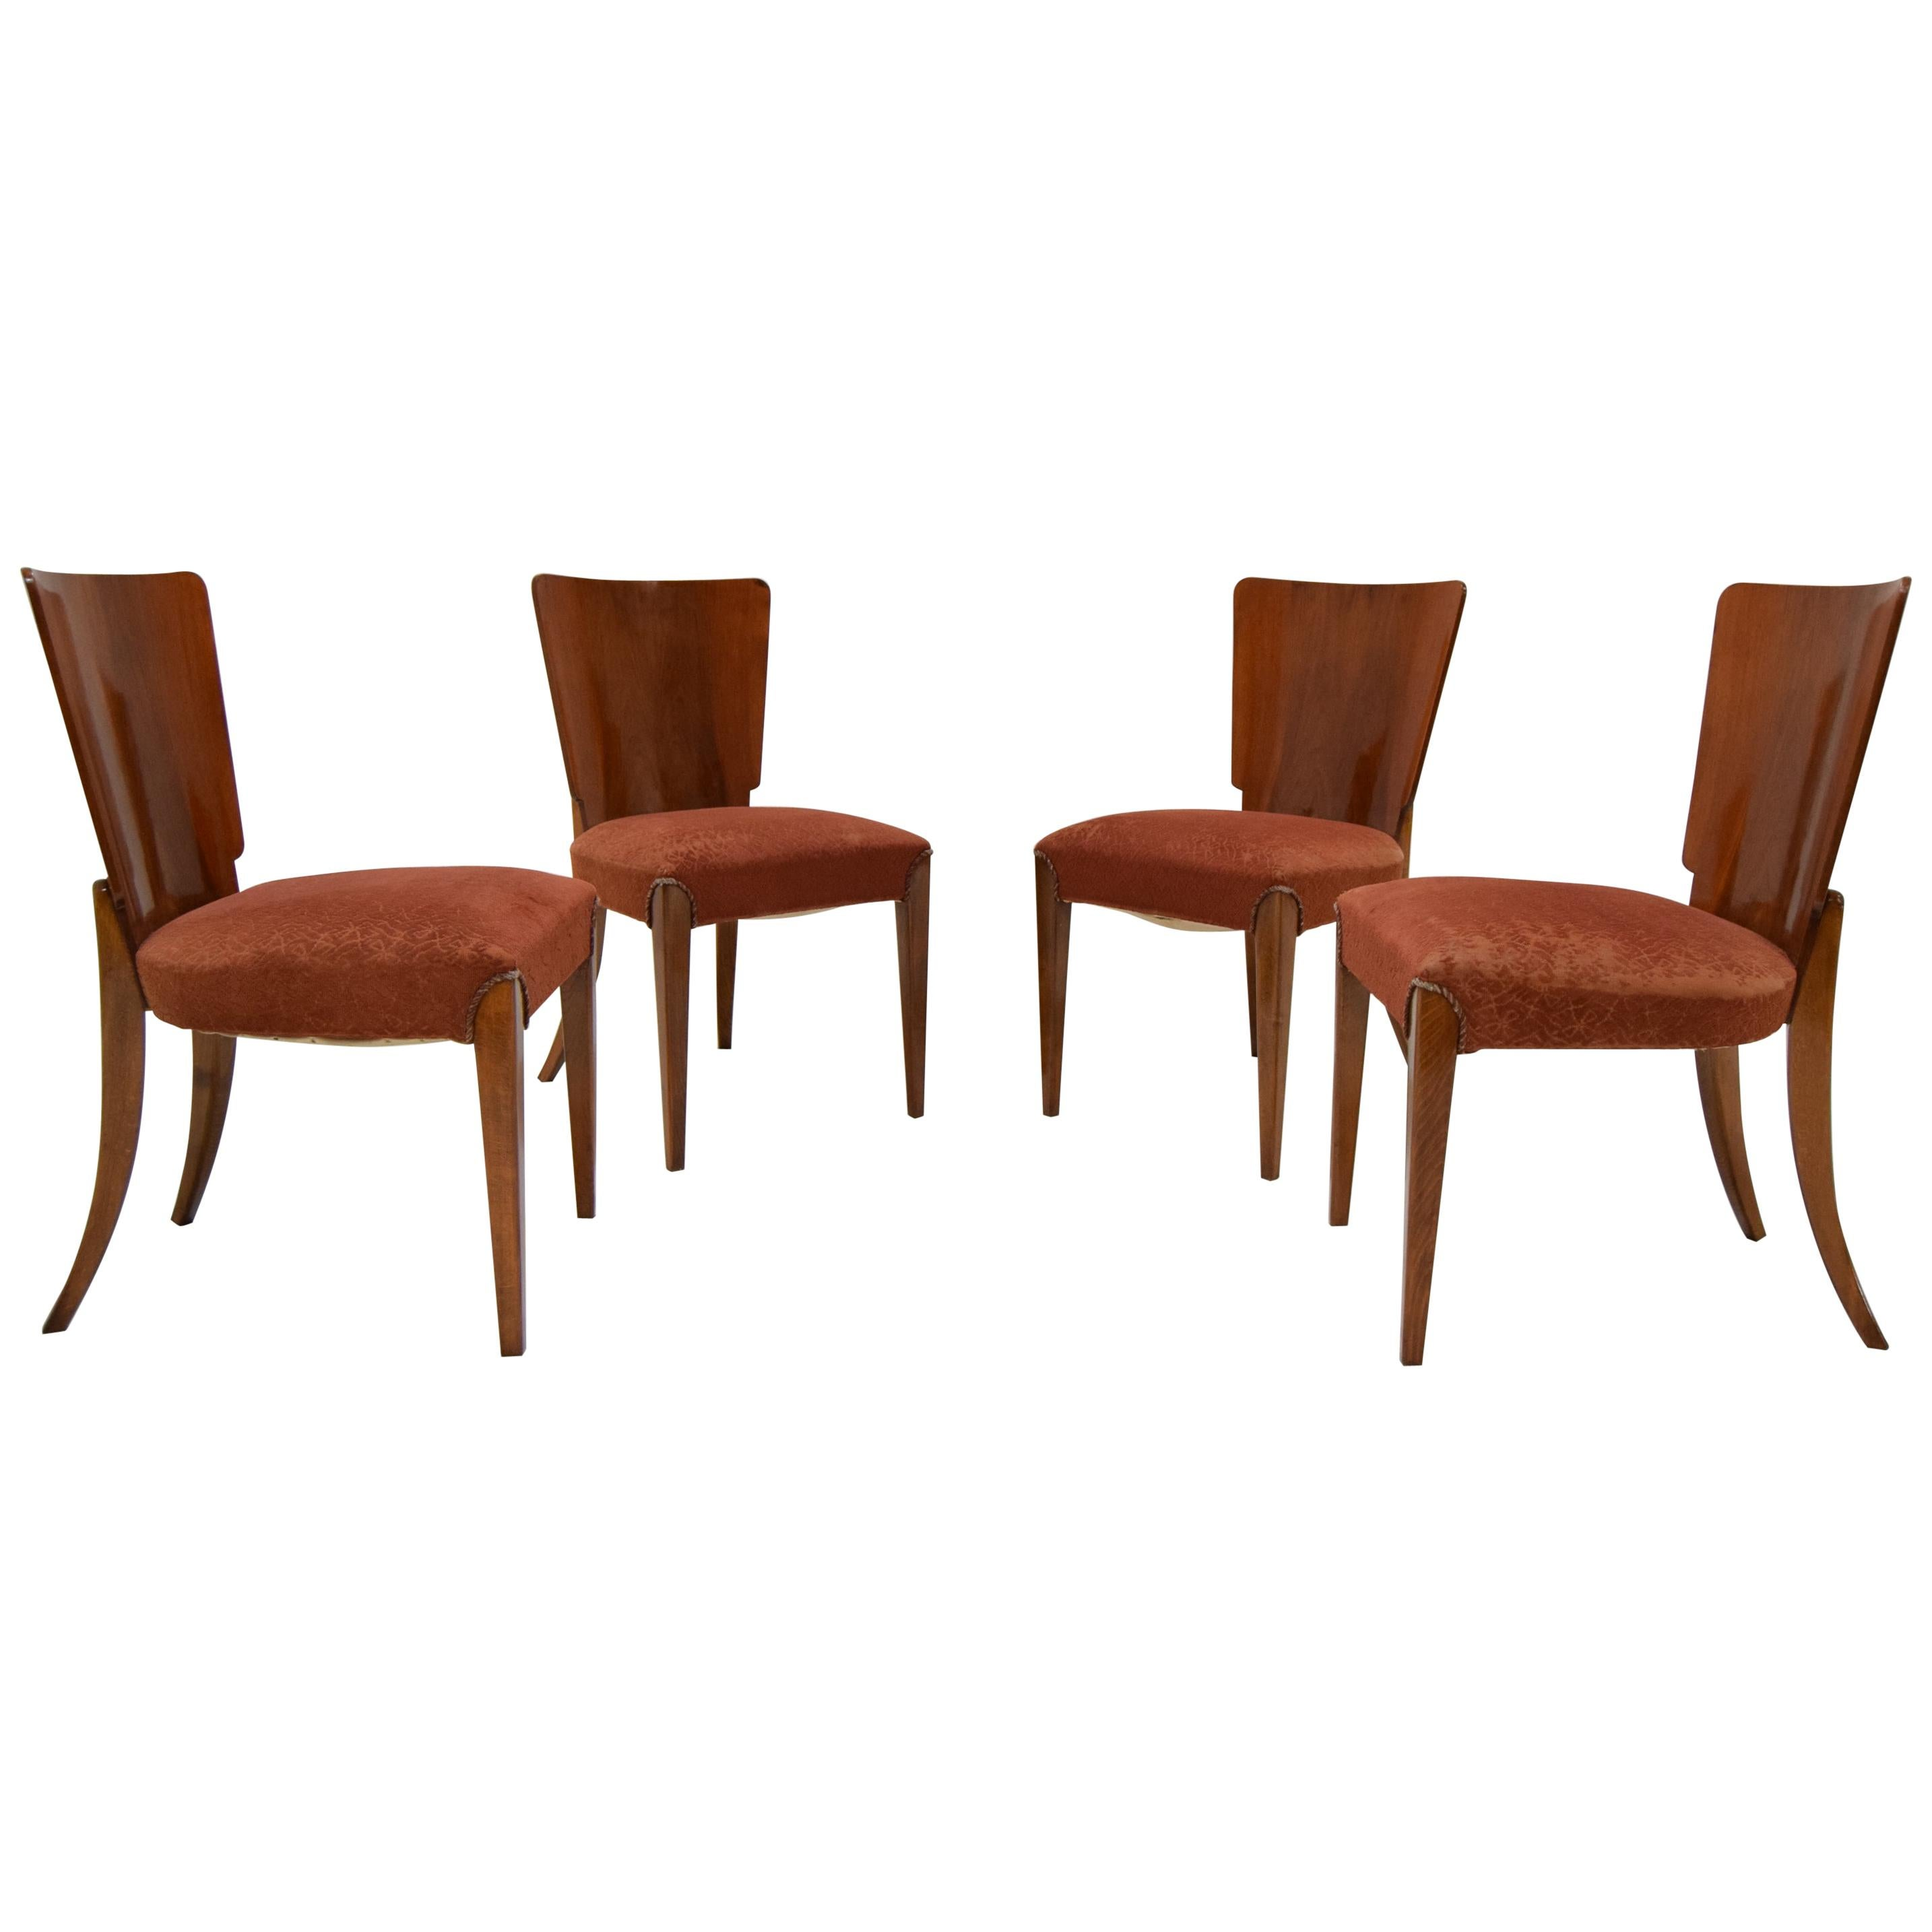 Vintage Art Deco Dining Chairs By Jindrich Halabala for Thonet, Set of 4